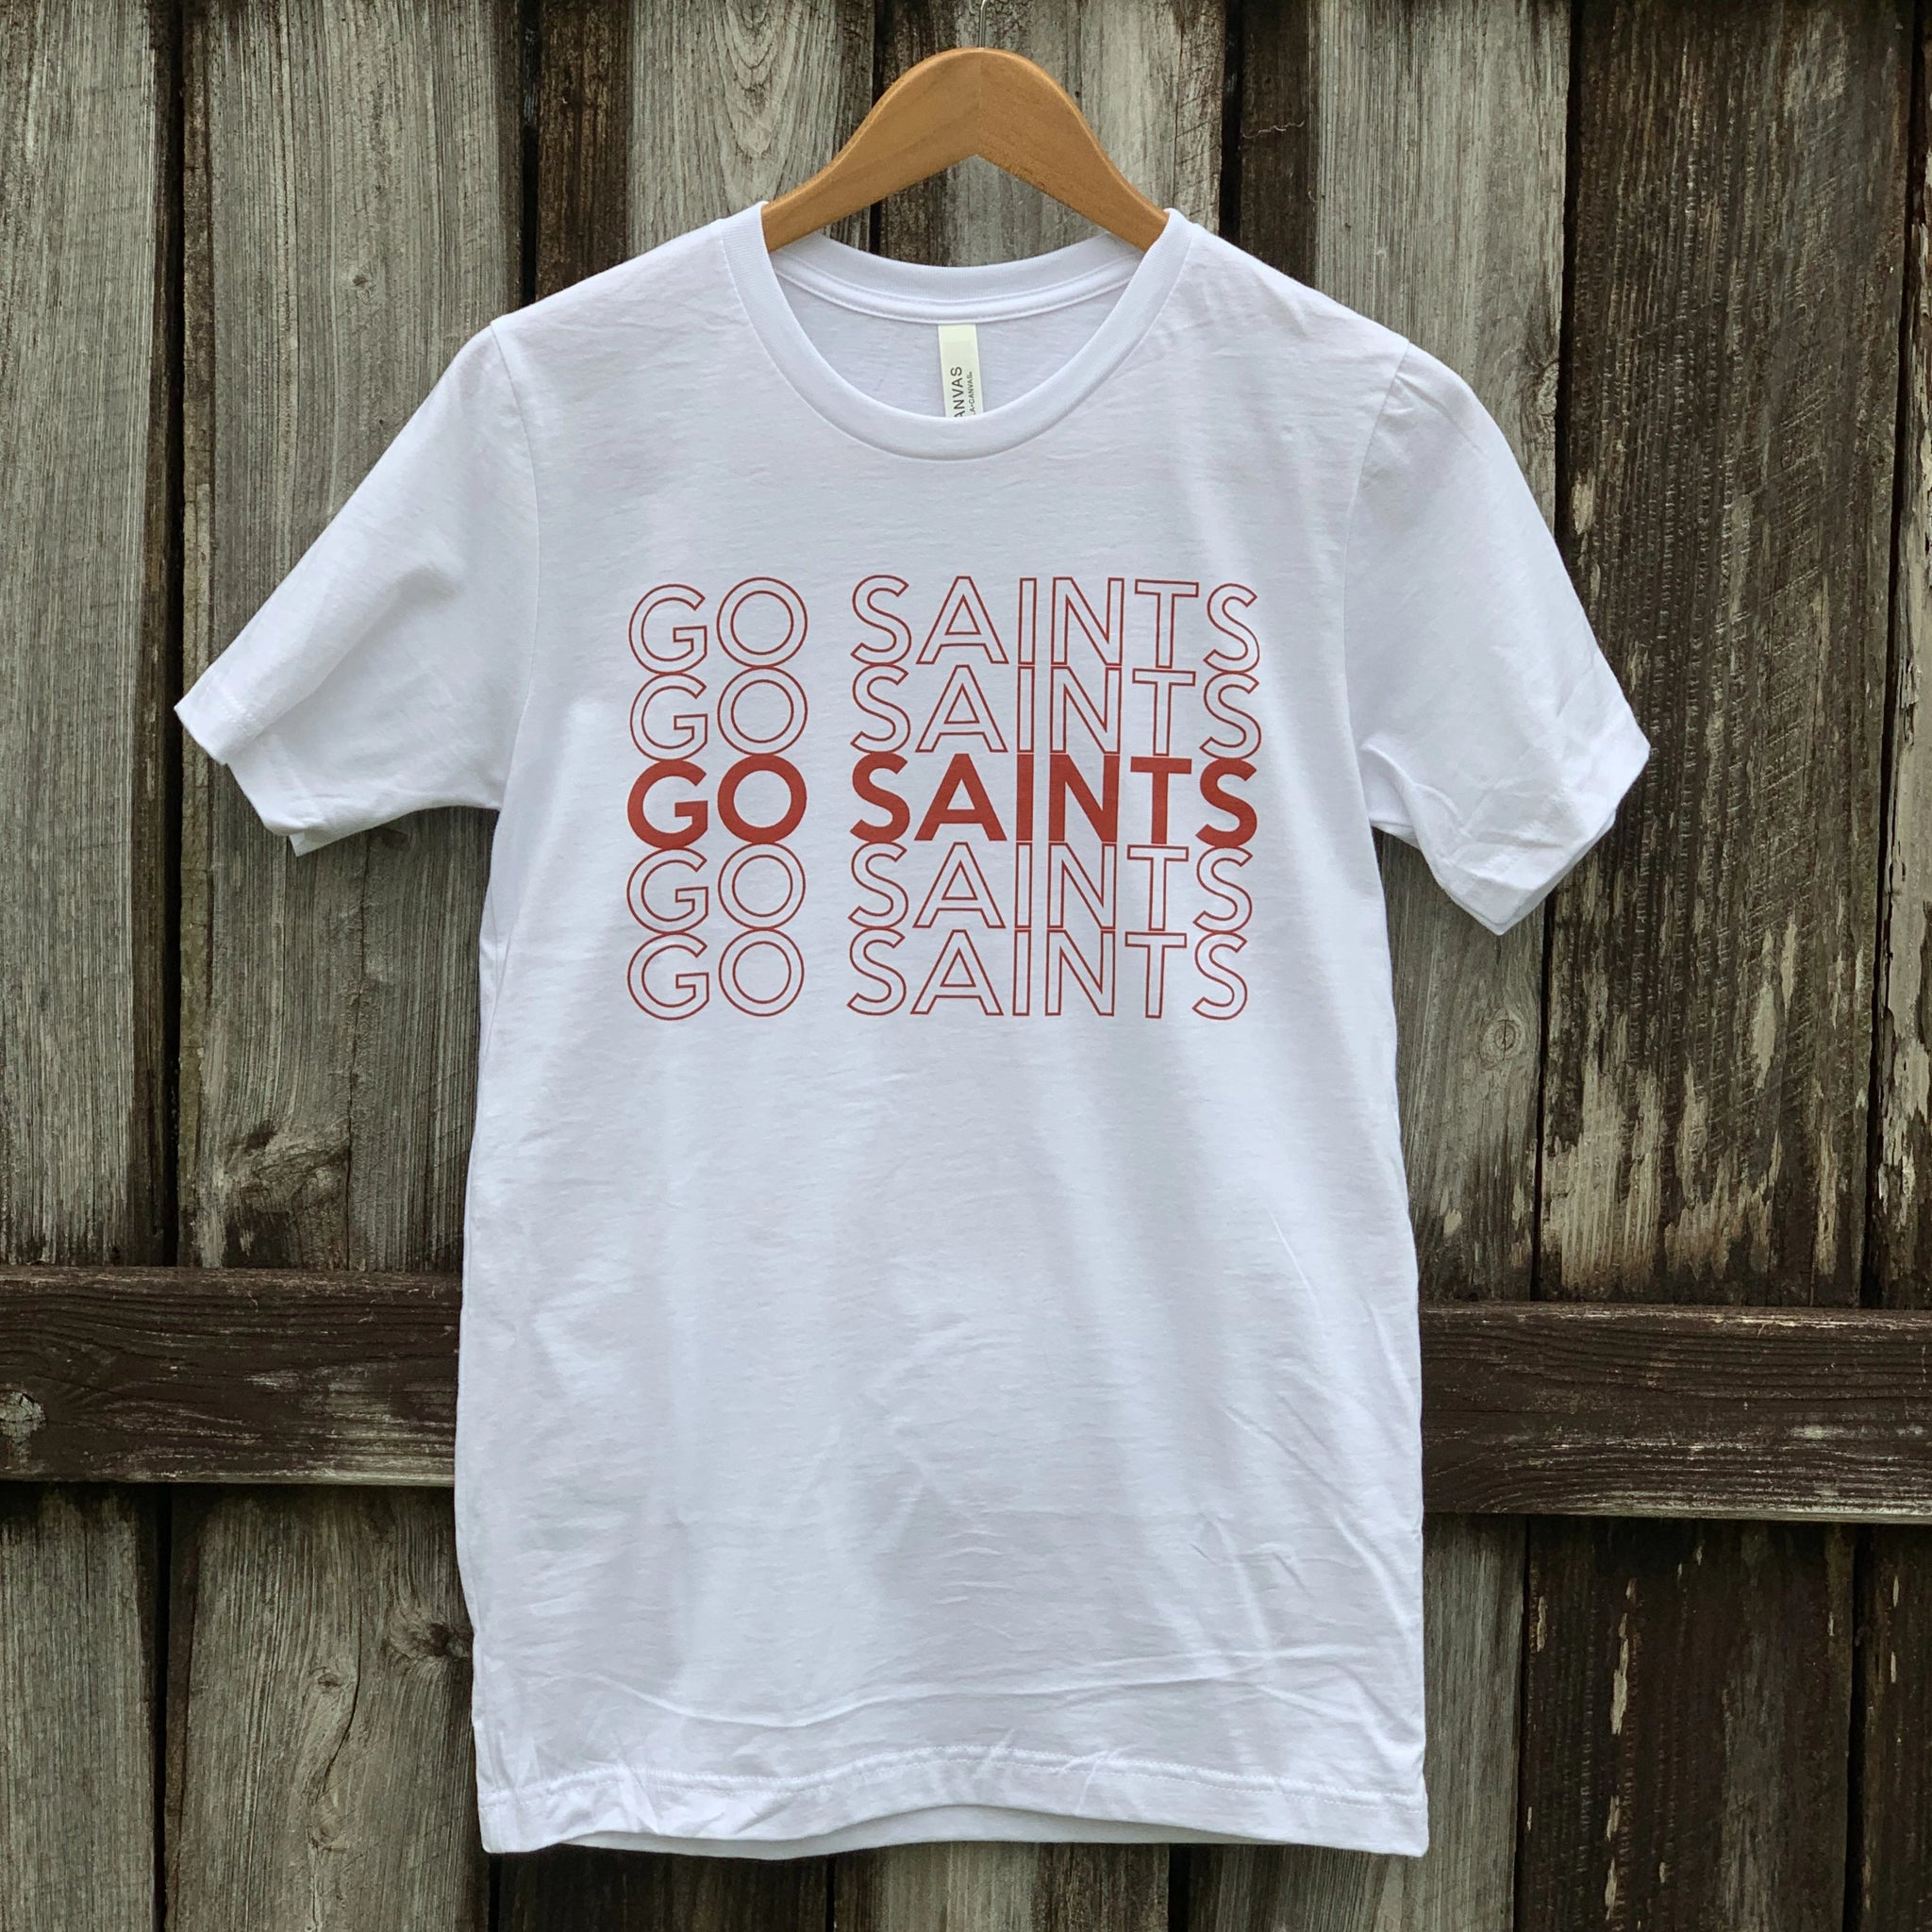 white t-shirt with go saints printed in red 5 times in a row